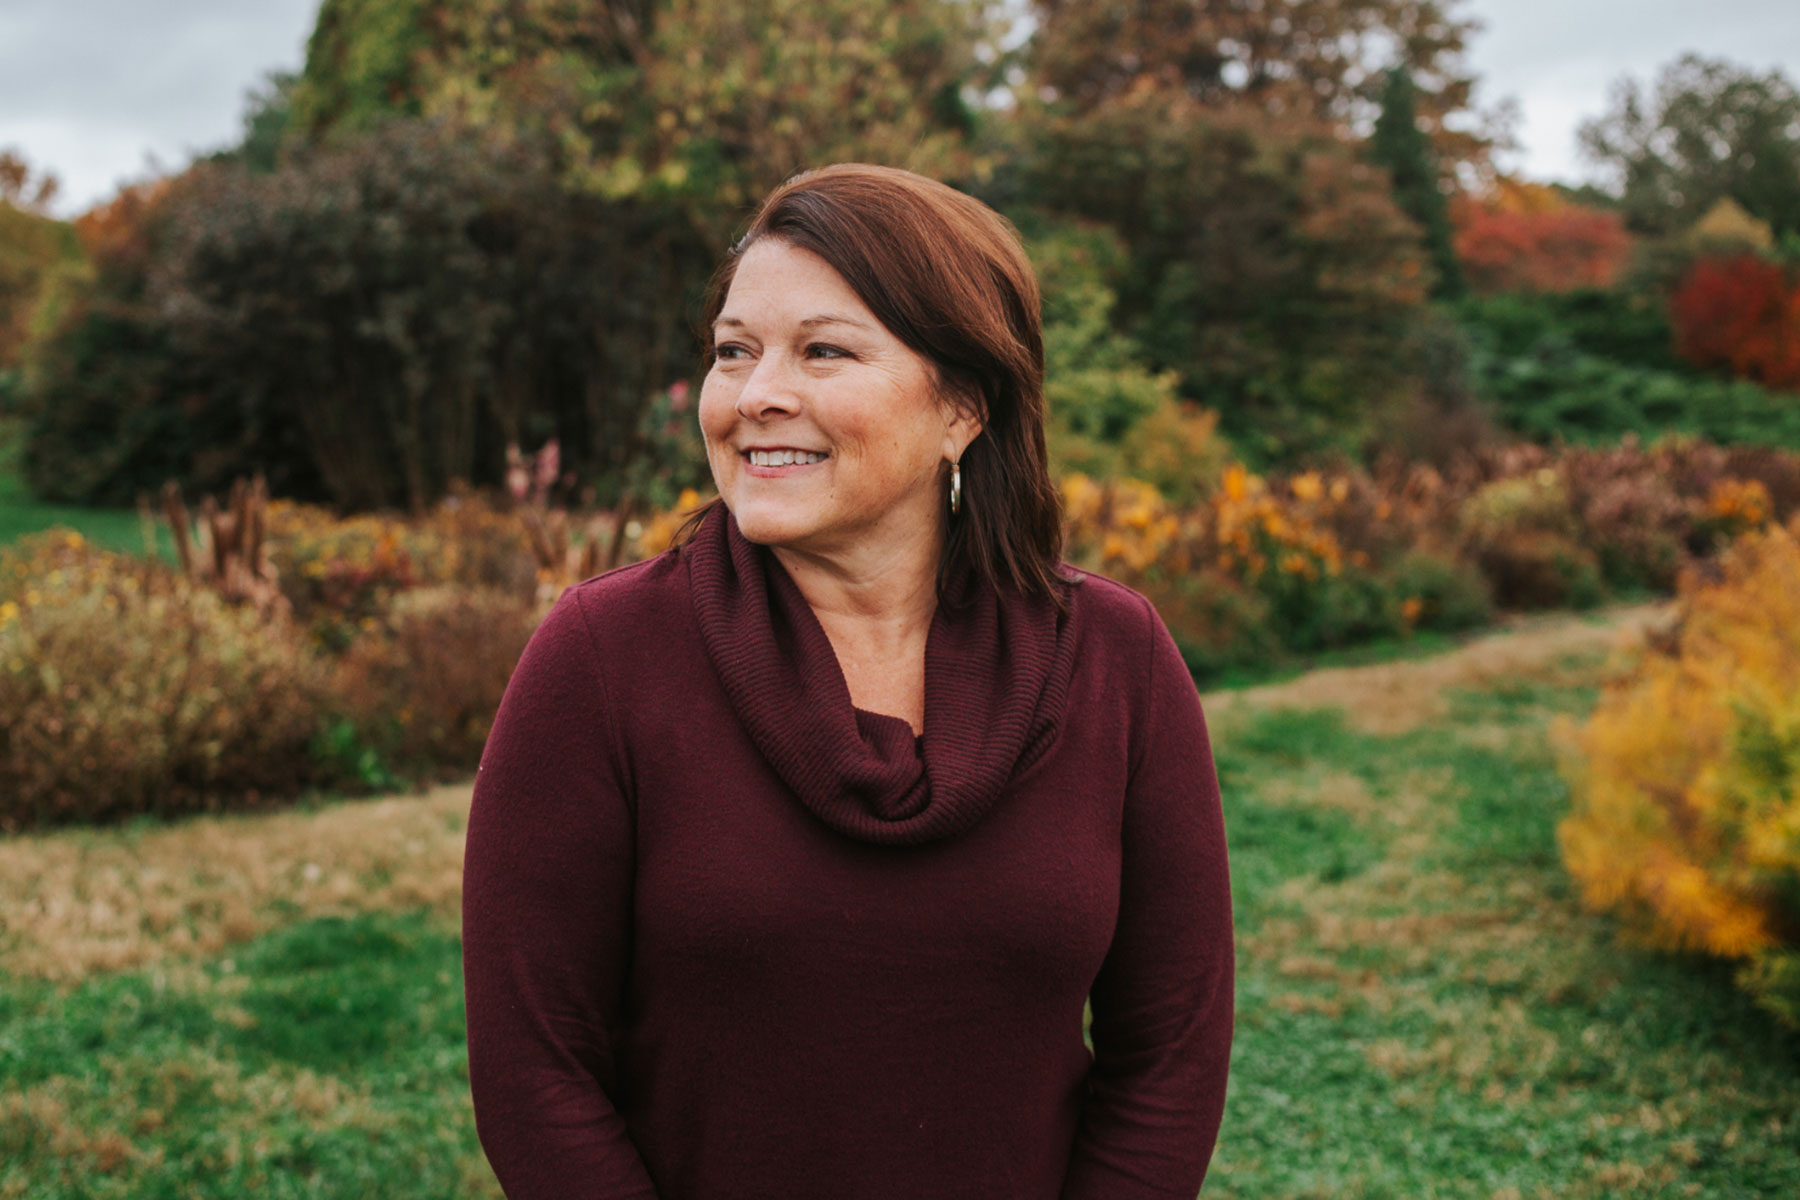 Jill Blake, a middle-aged white woman with brown hair, stands in an outdoor setting and smiles while she looks away from camera. She is wearing a dark red sweater.